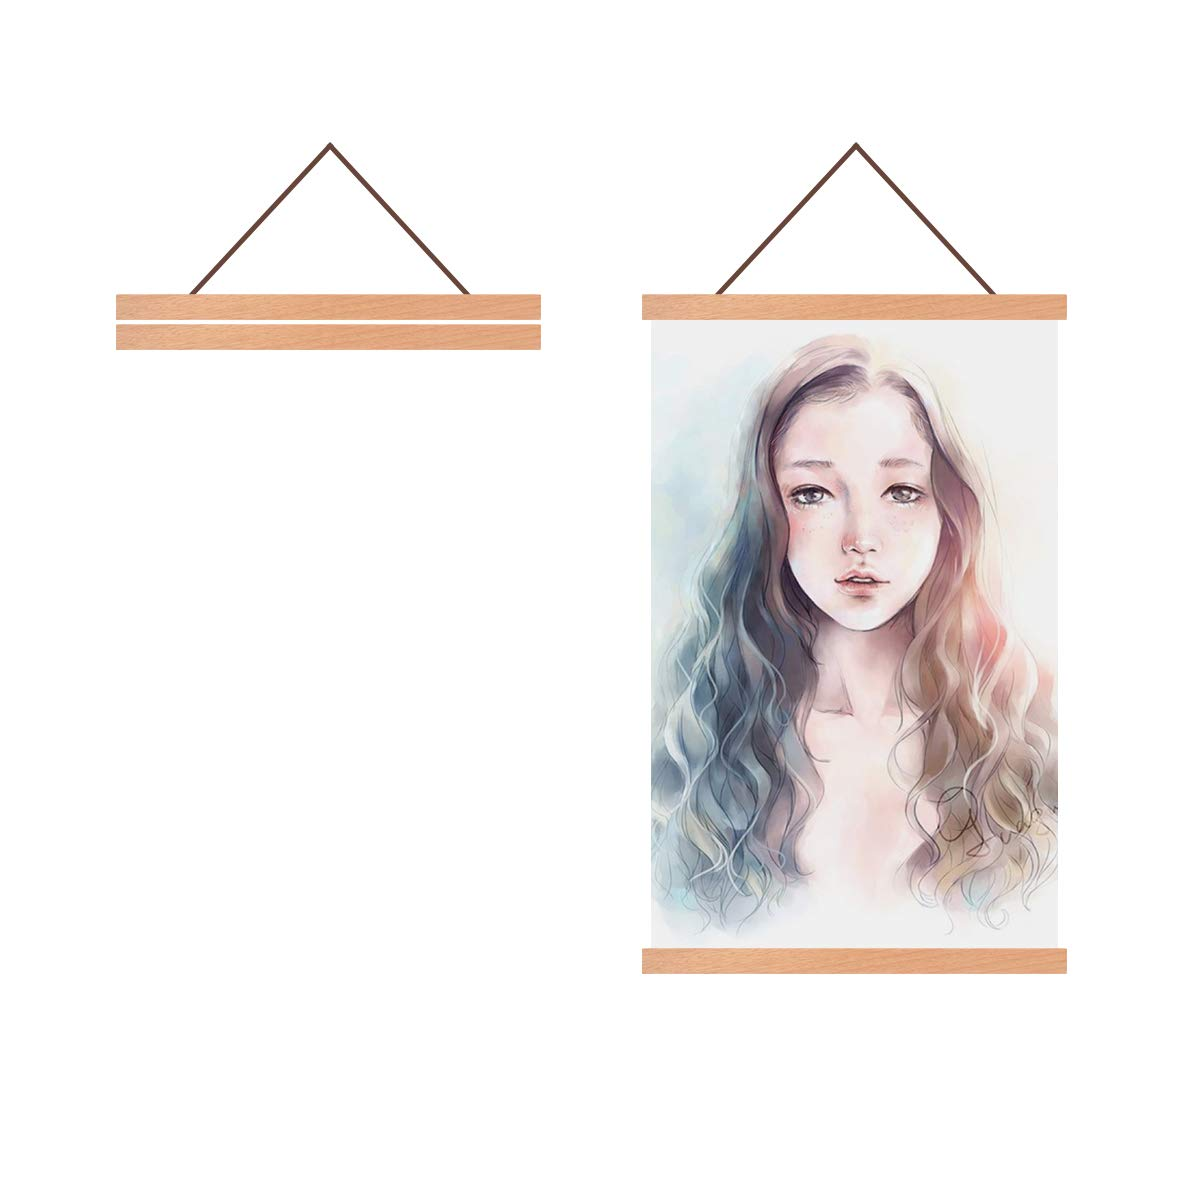 Radezon 16x20 16x24 Poster Frame, Magnetic Poster Frame Hanger for Photo Picture Canvas Artwork Wall Hanging (16 inch) by Radezon